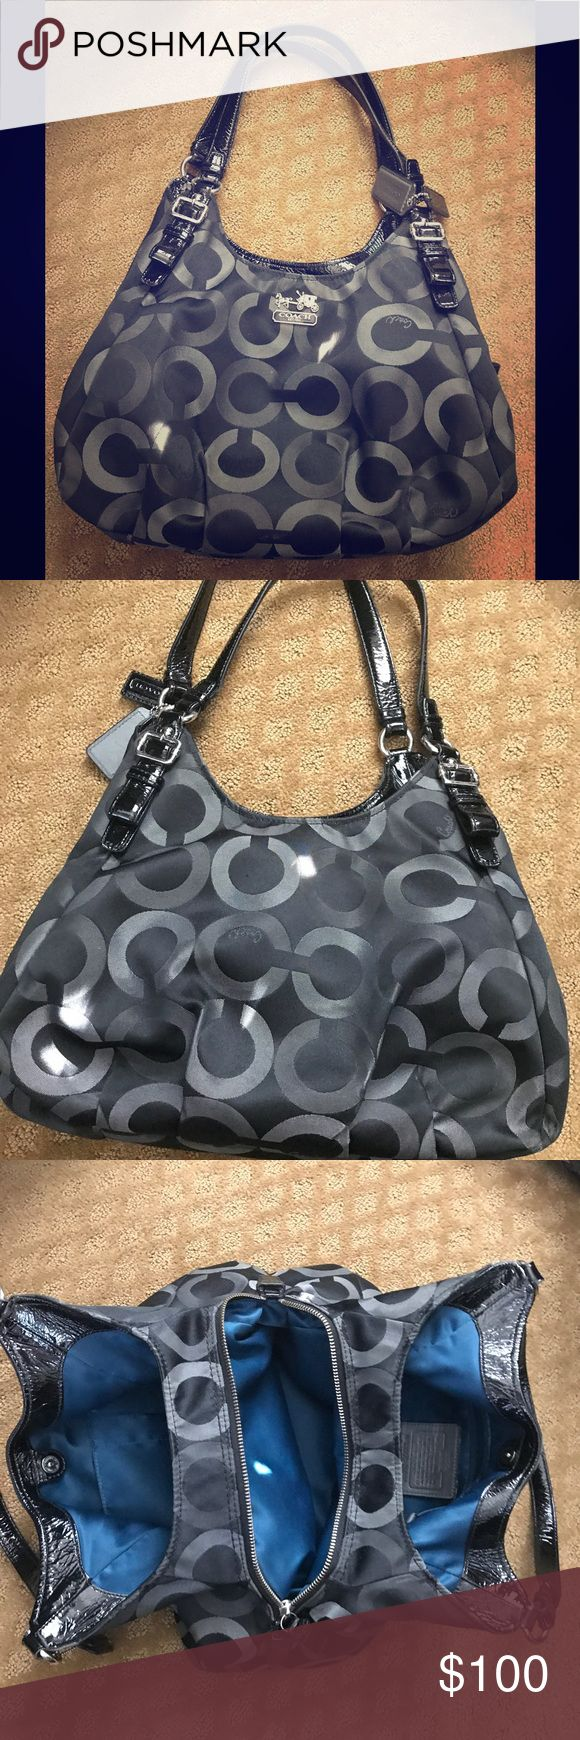 Black Coach purse handbag Beautiful coach purse, that is in great condition. Has a really clean inside and no cracking in handles. Does have the attached Coach tag but no dust bag included. The inside color is beautiful! The back of the bag is a little dirty but nothing too noticeable. Coach Bags Shoulder Bags